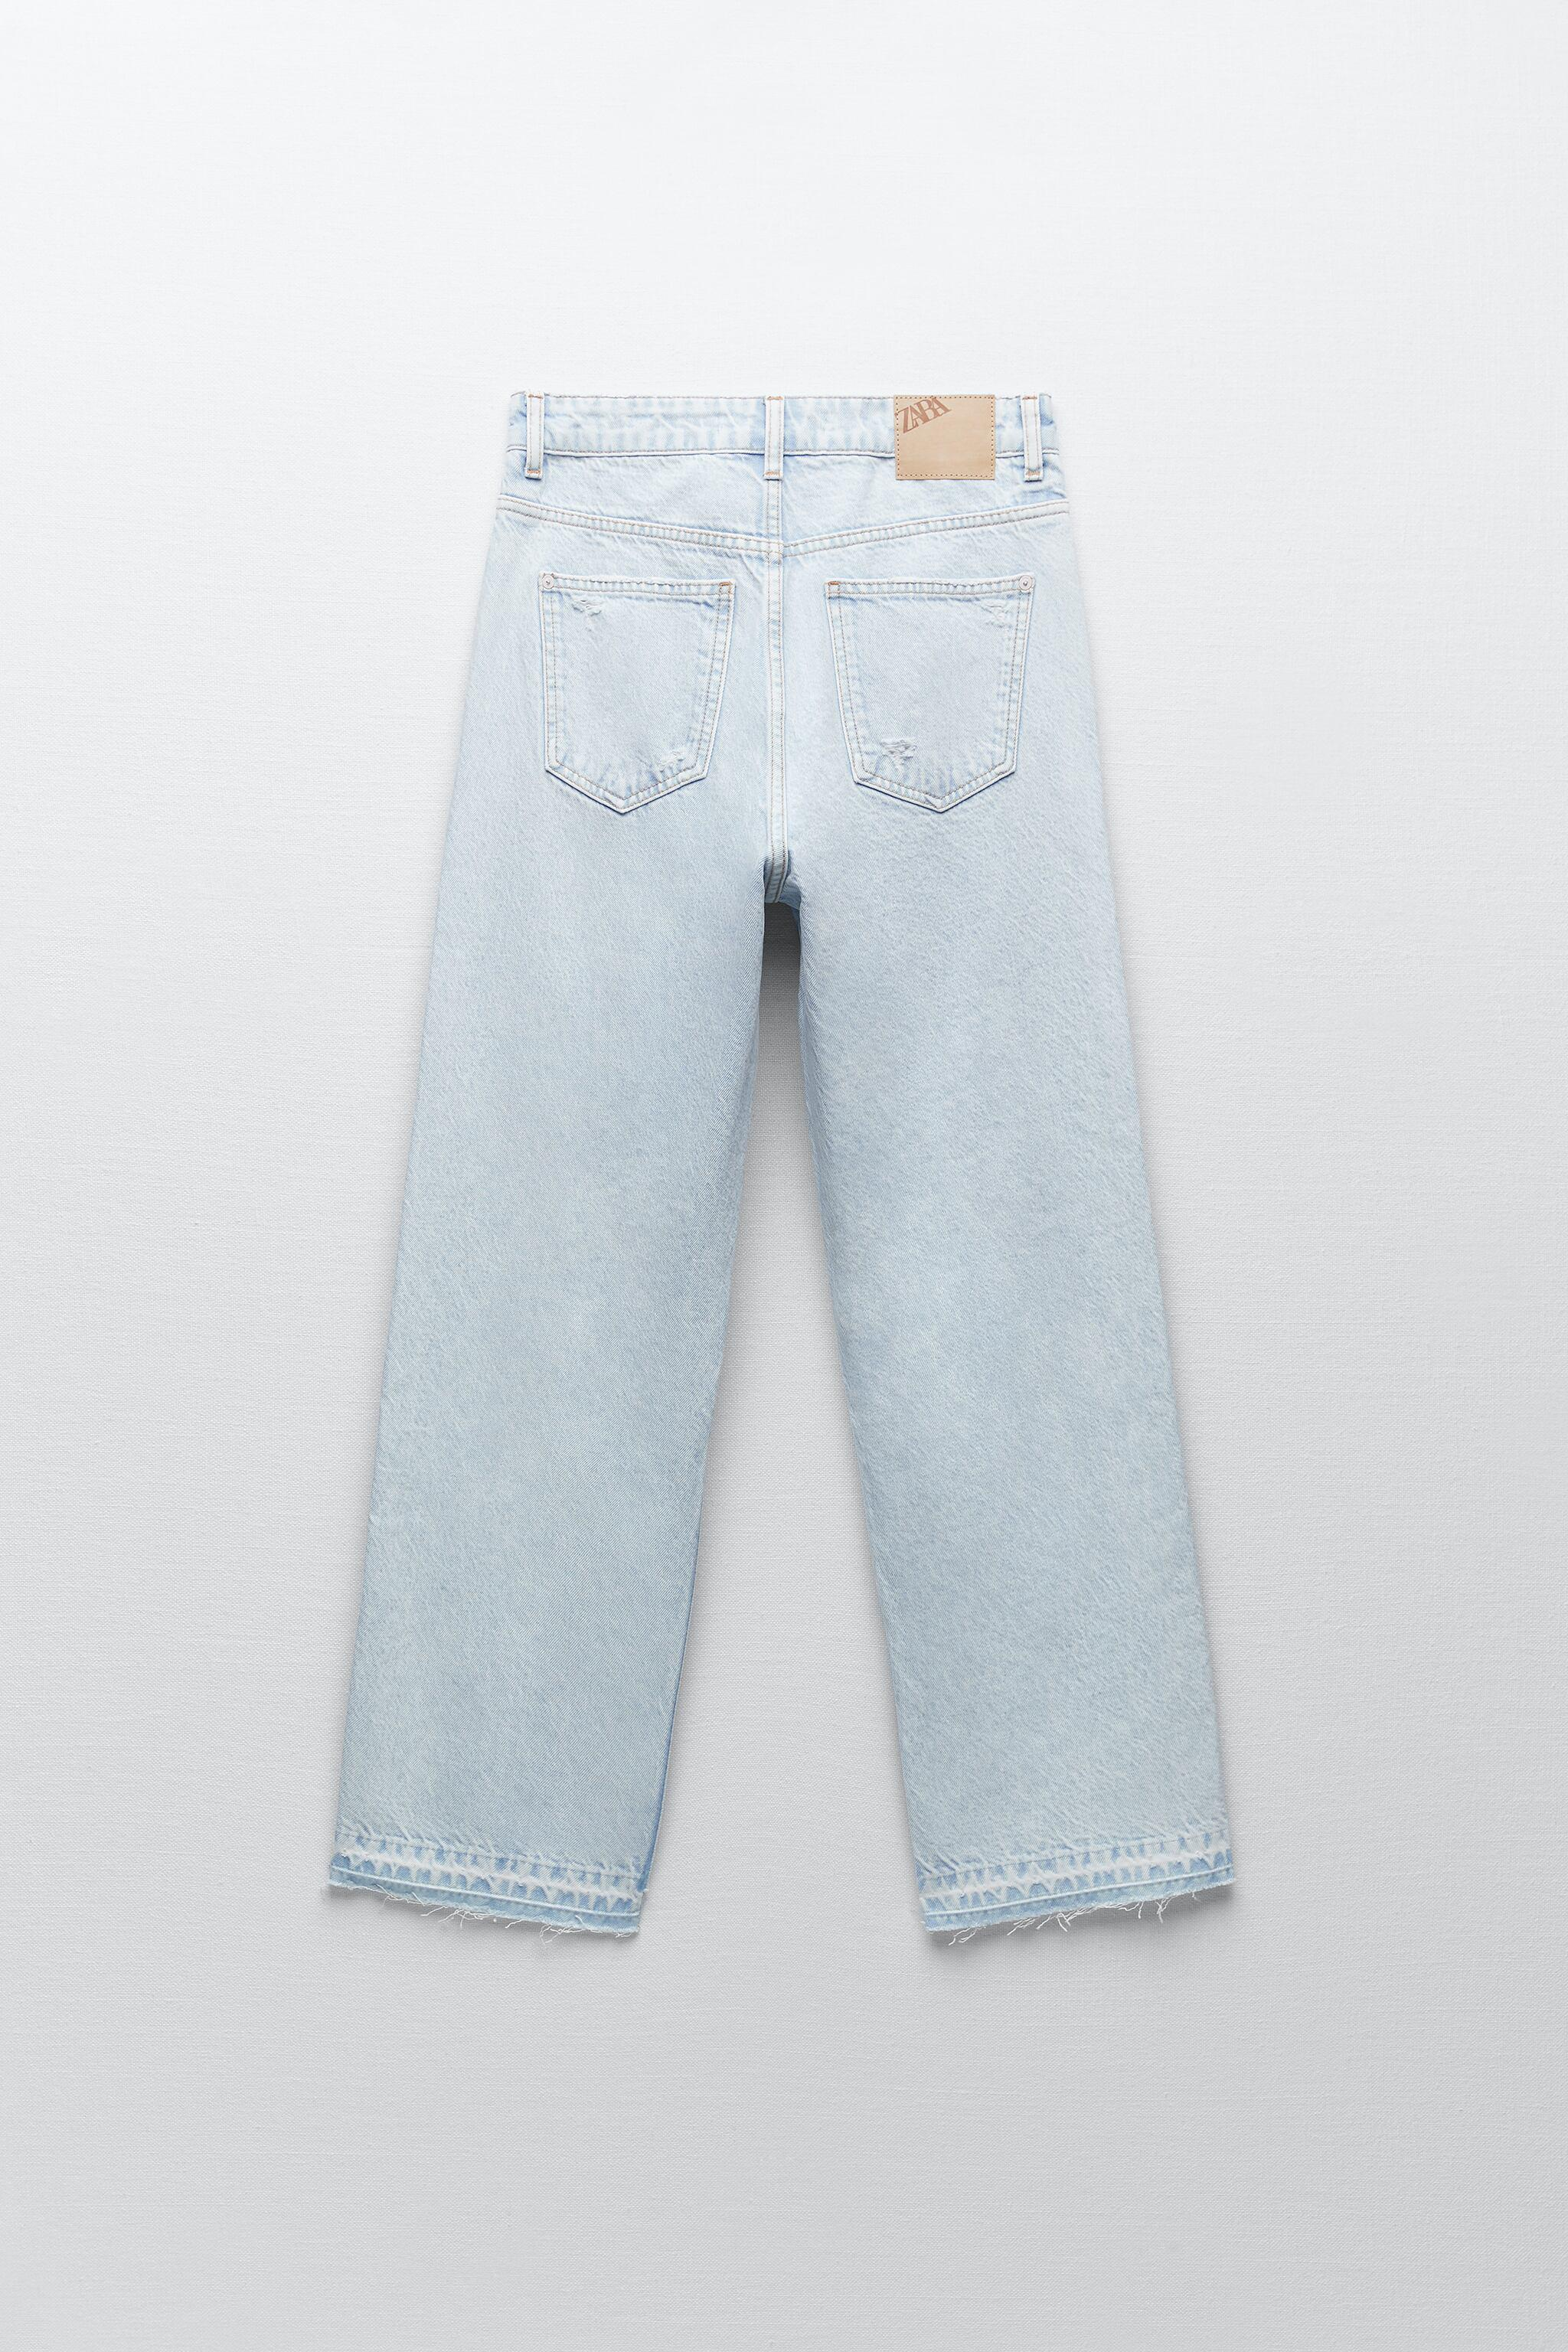 Z1975 MOM FIT JEANS 8